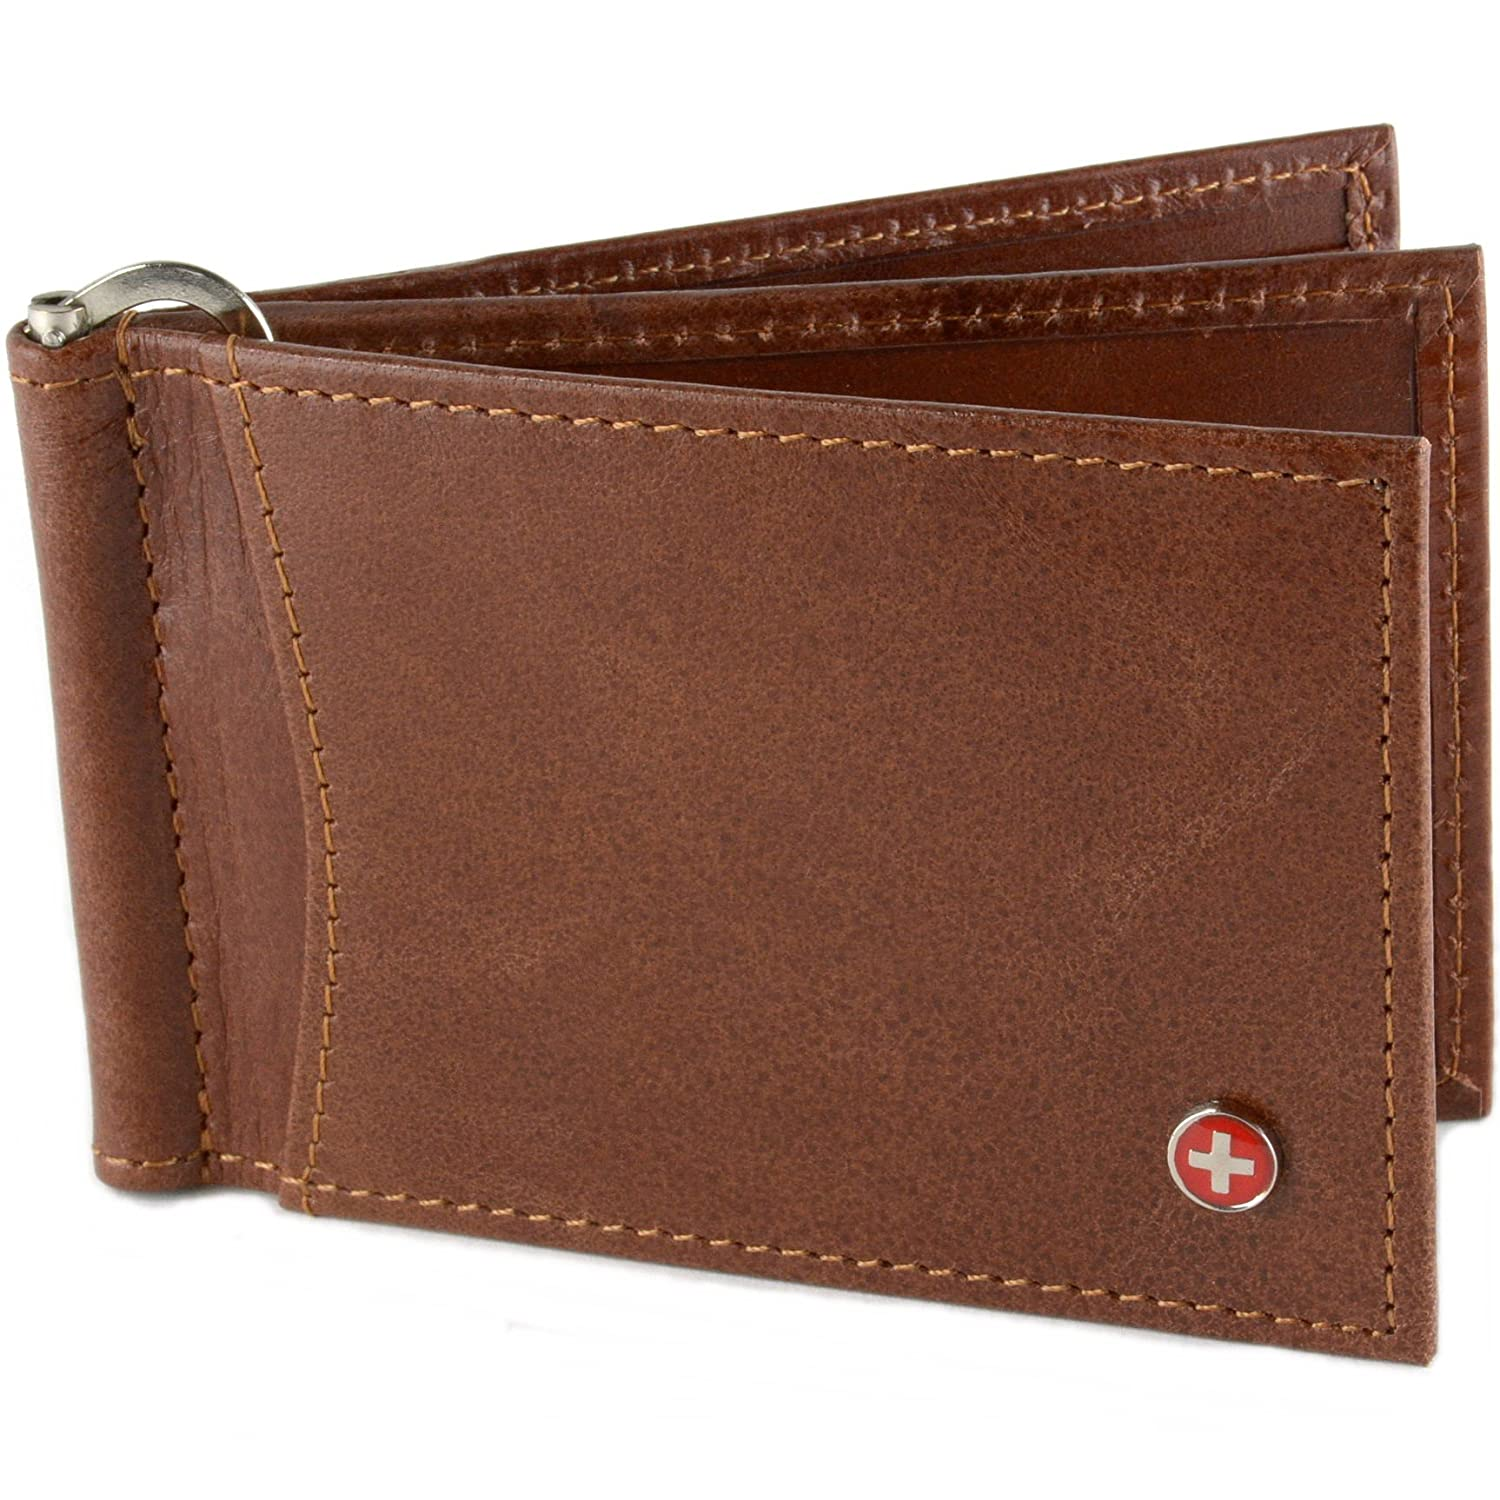 Alpine Swiss RFID Blocking Mens Leather Deluxe Spring Money Clip Wallet By Alpine Swiss